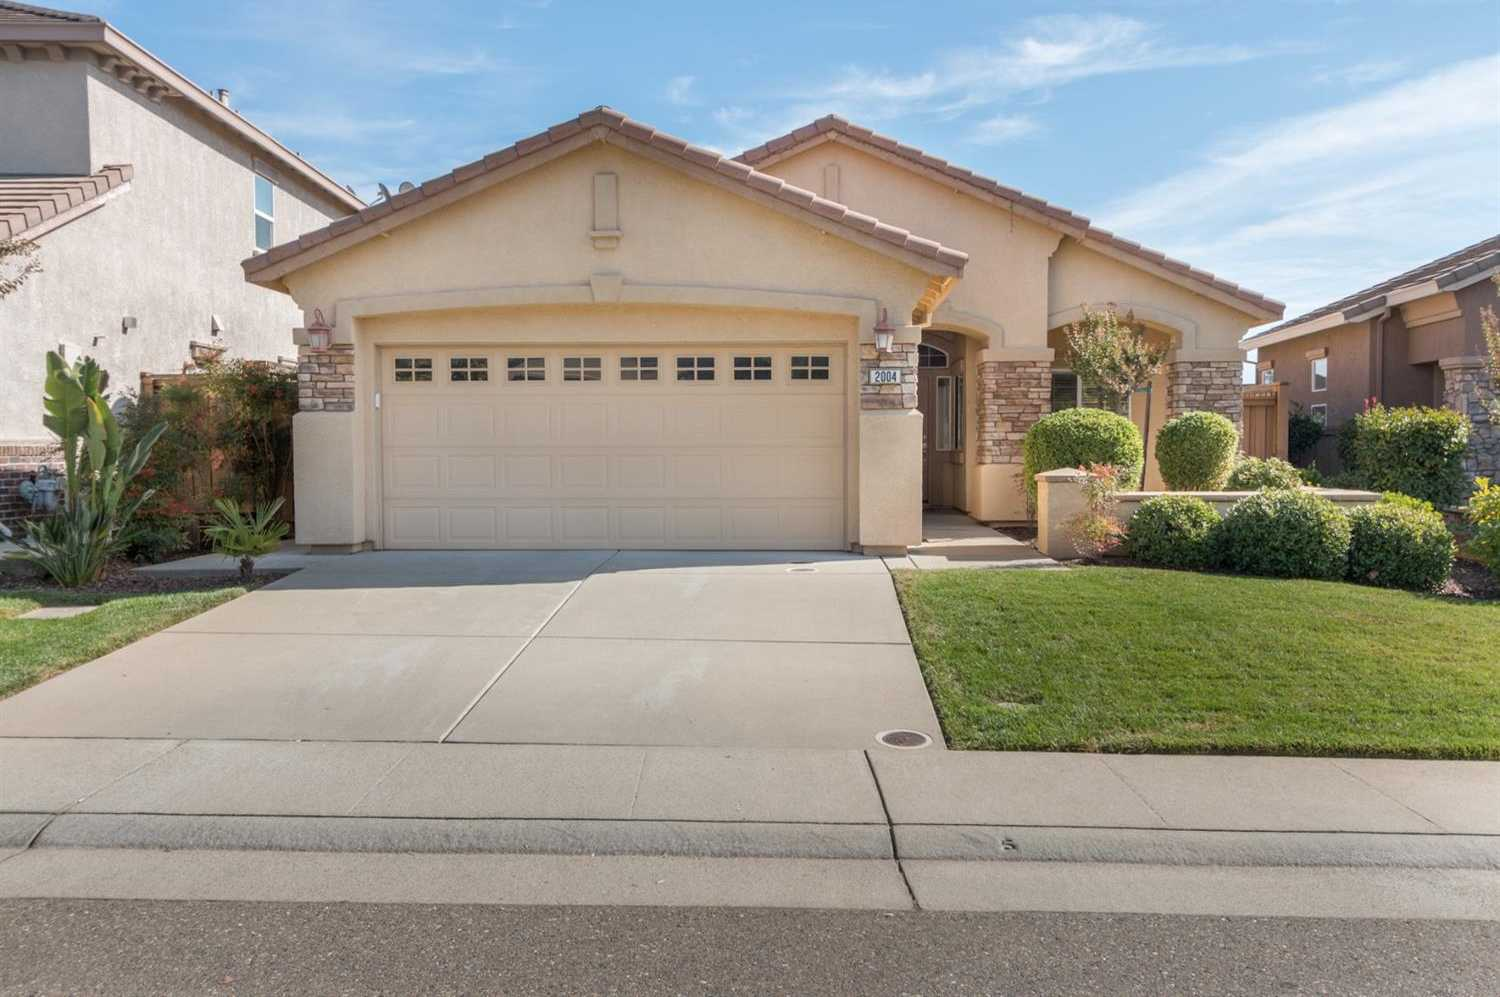 $499,000 - 3Br/2Ba -  for Sale in Empire Ranch, Folsom